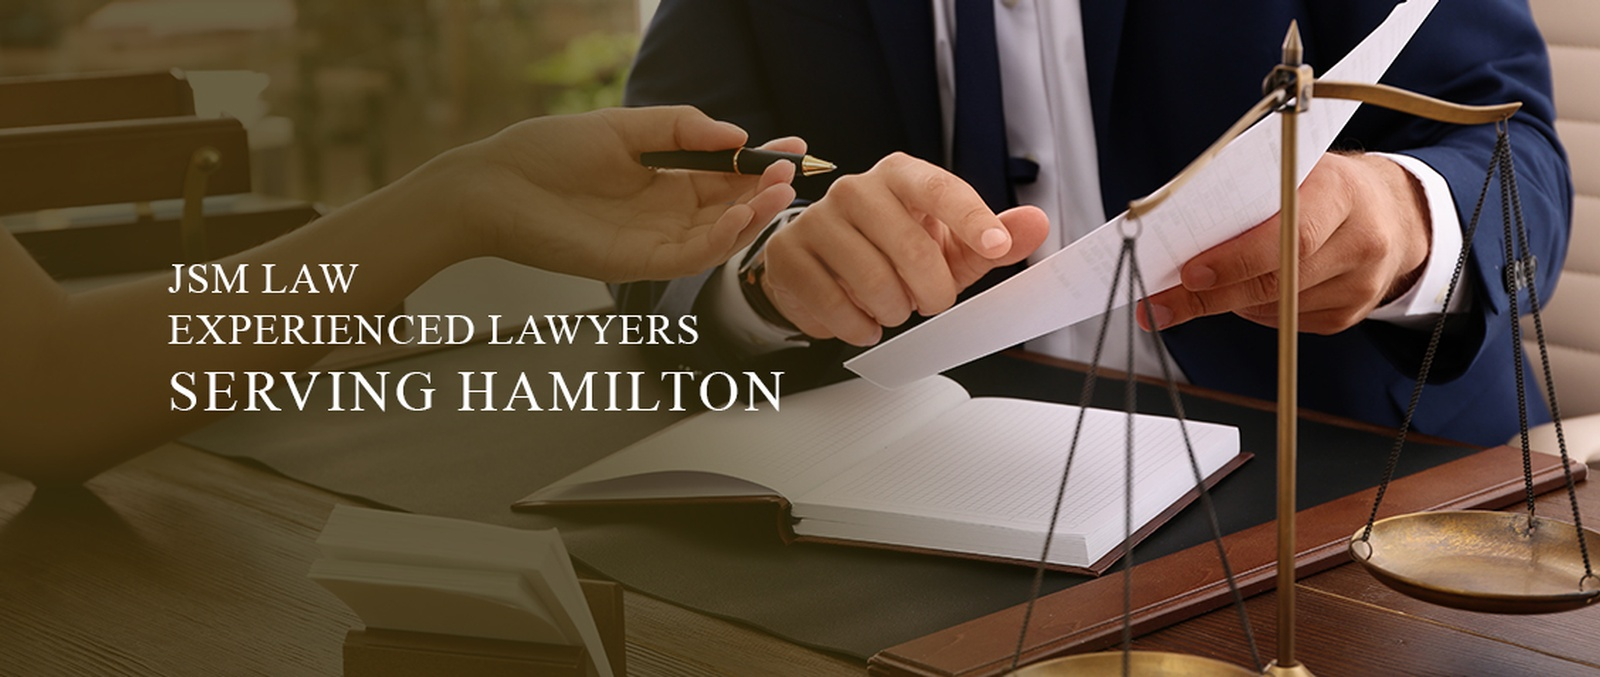 CORPORATE, CRIMINAL AND PERSONAL INJURY LAWYERS HAMILTON ON